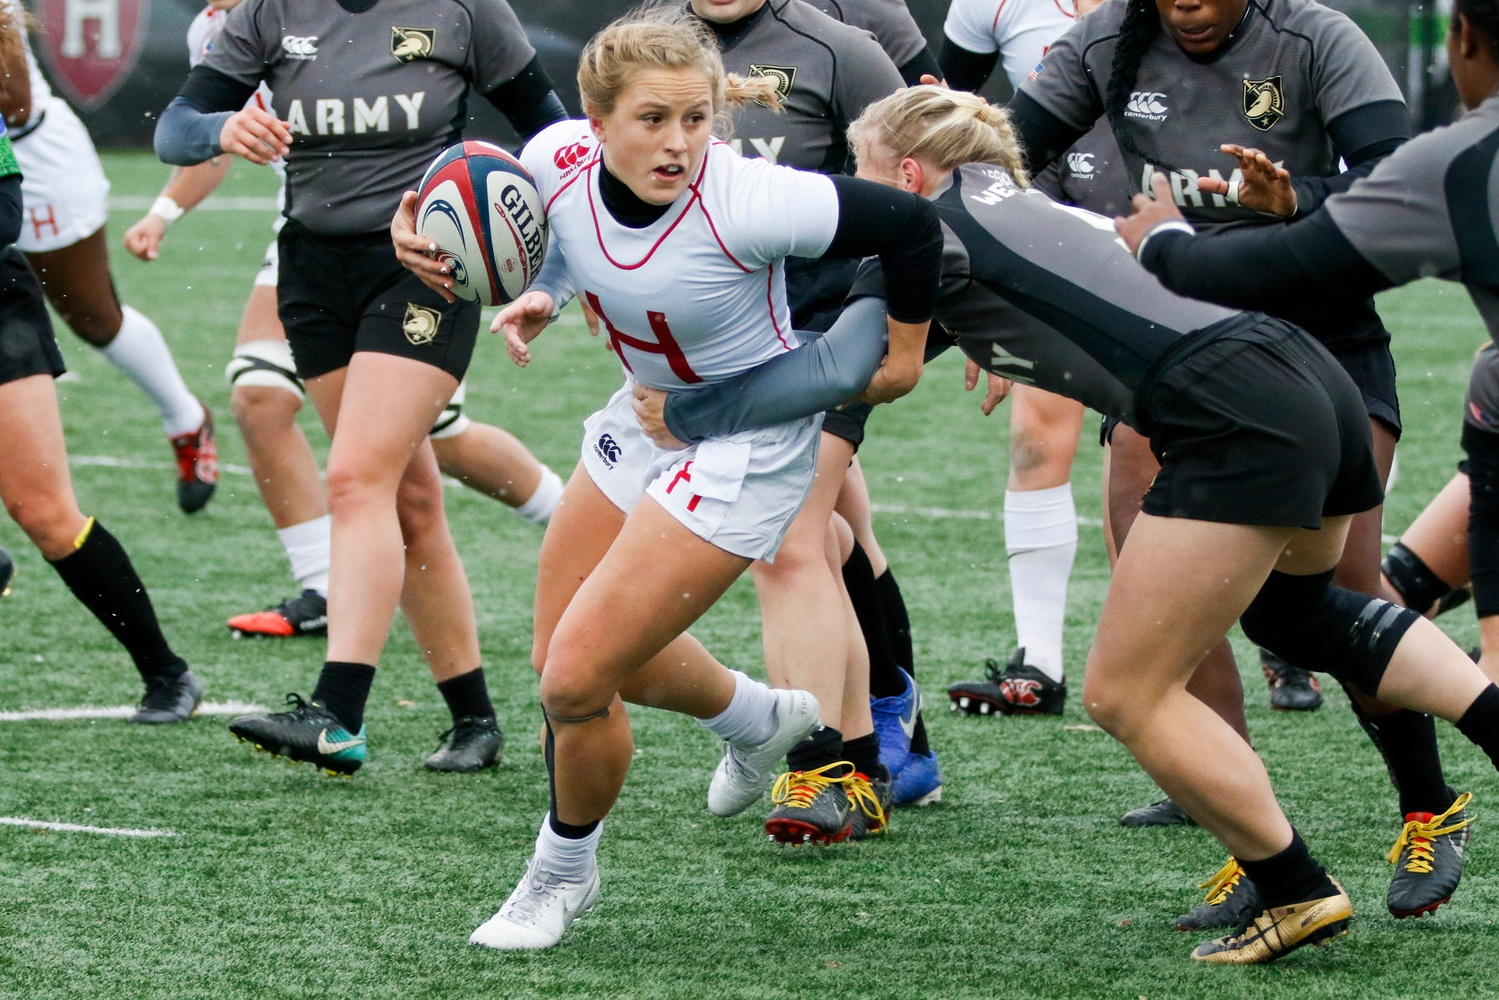 Cassidy Bargell evades an opponent as she helps Harvard women's rugby win the 2019 NIRA National Championship.